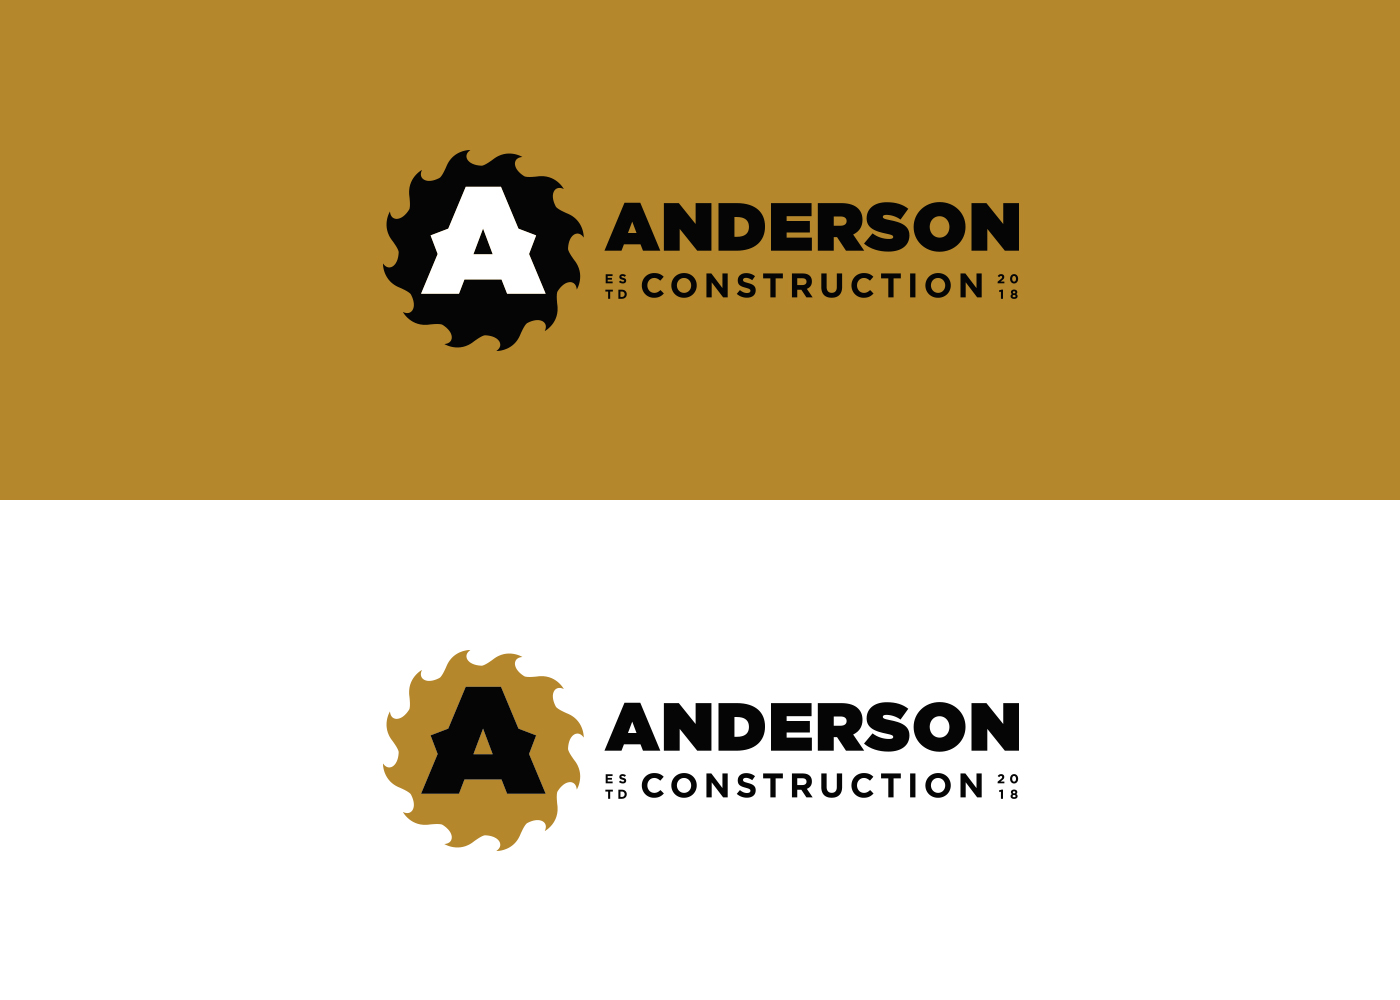 Anderson-Construction_Horizontal.jpg